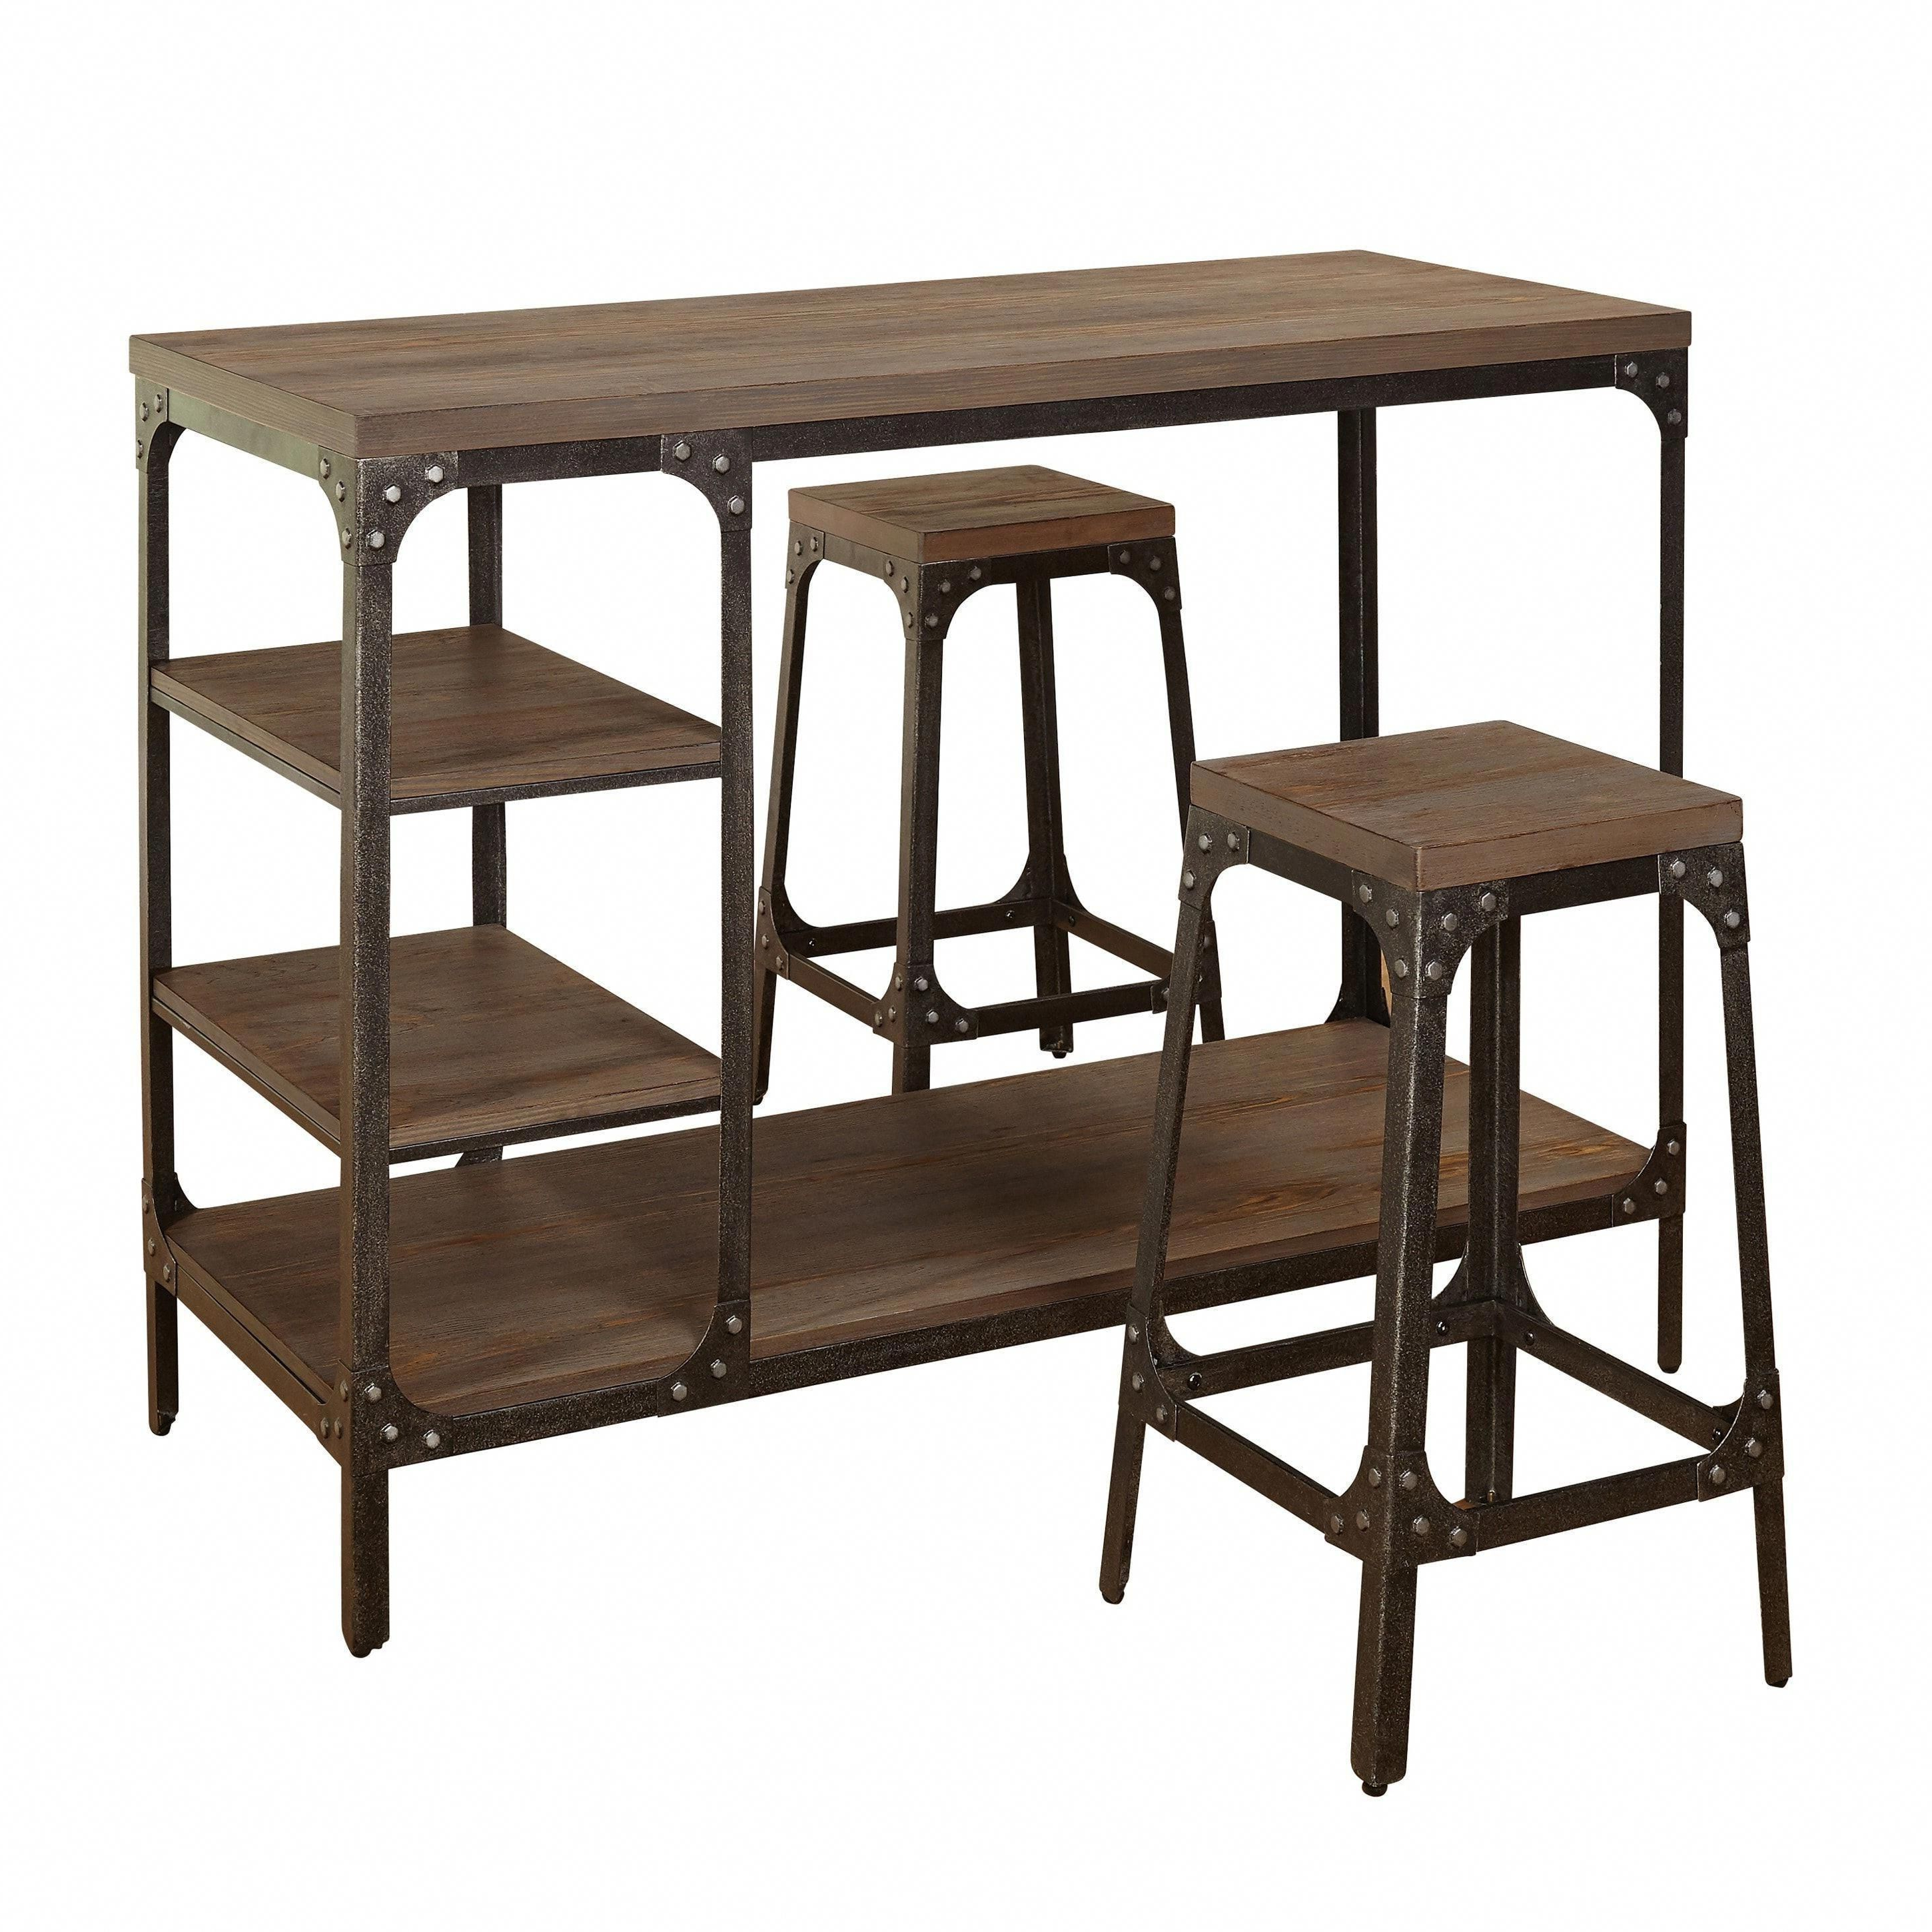 2017 Kerley 4 Piece Dining Sets In Simple Living Scholar Vintage Industrial 3 Piece Counter Height (View 1 of 20)